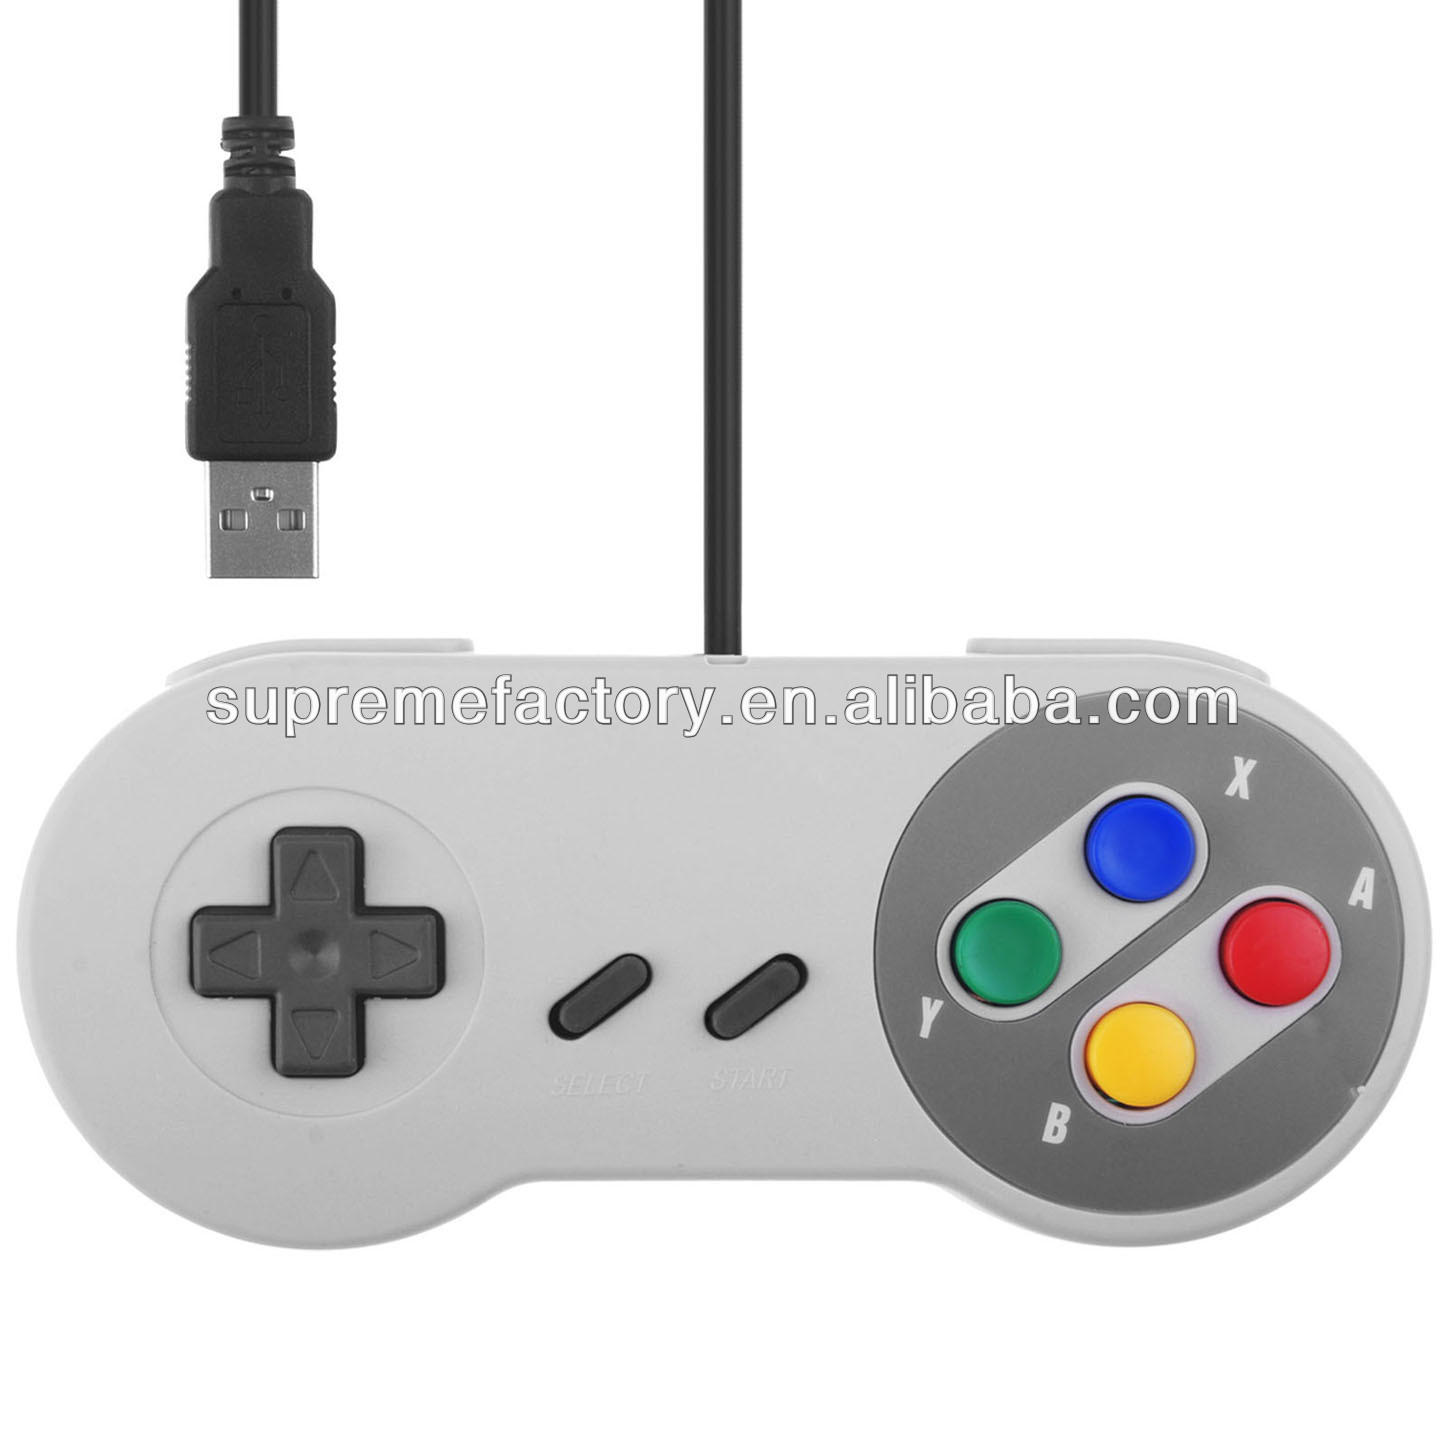 SNES game controller to PC USB for Windows